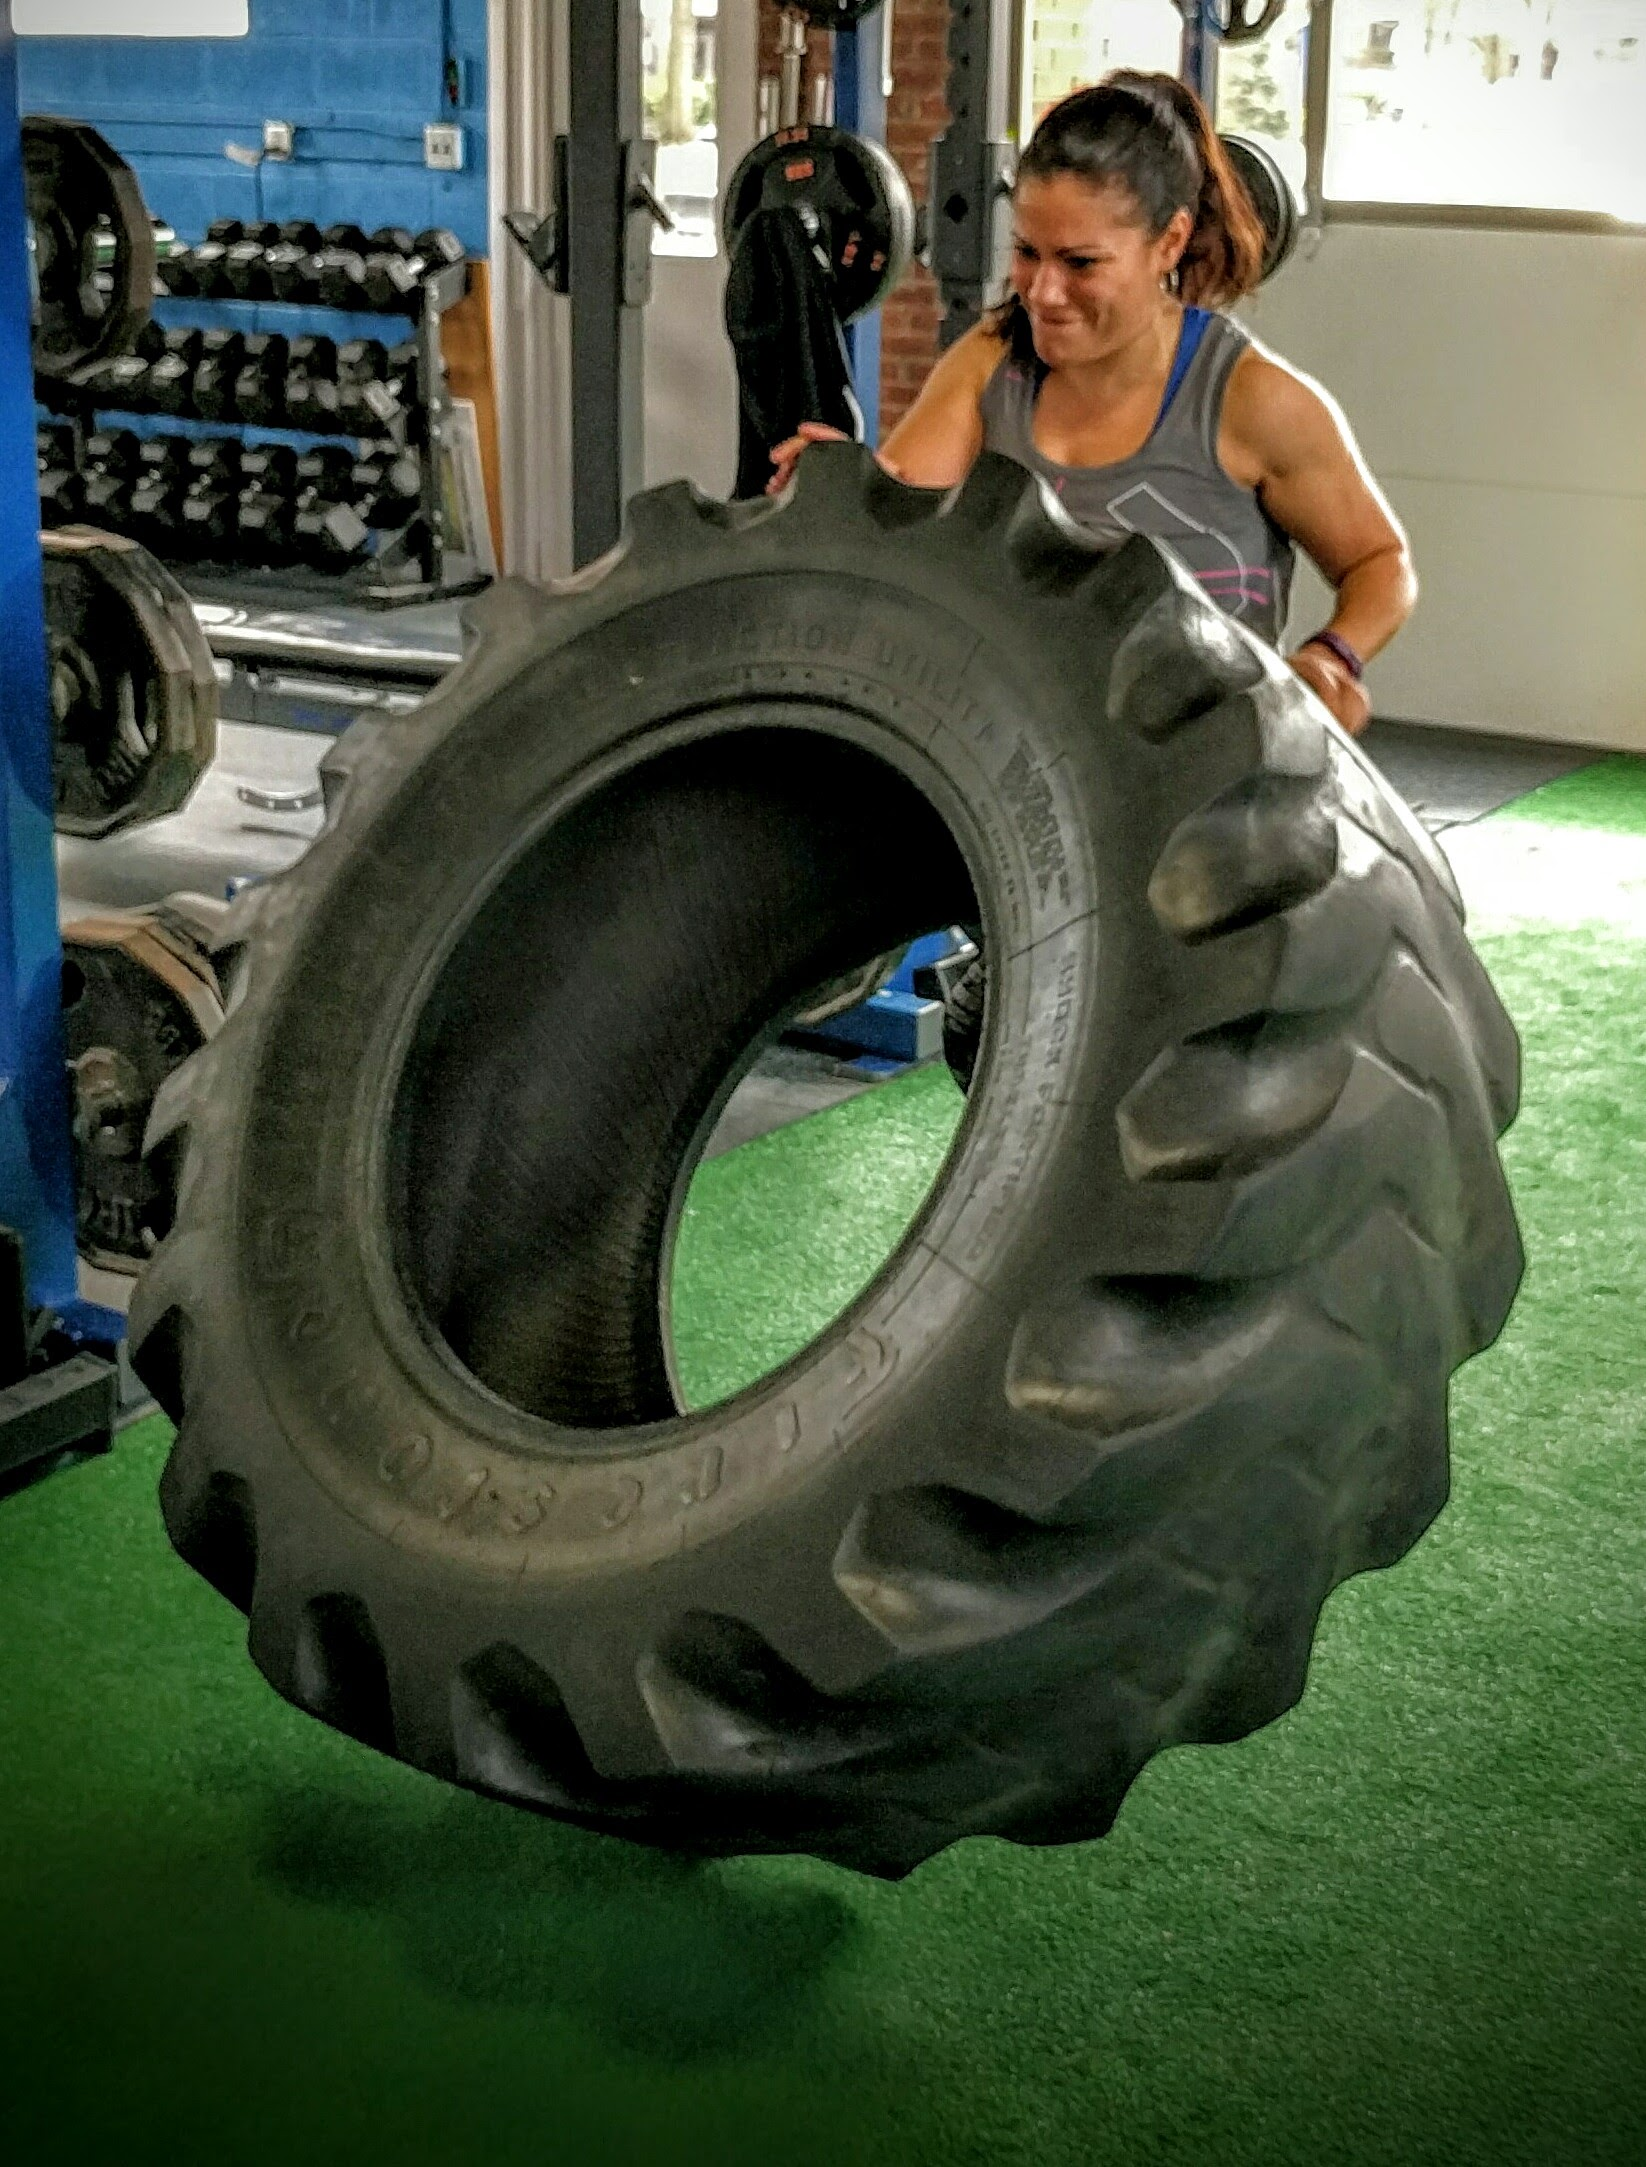 Hybrid Strength Club - Wed eveing 7:30pm Sat morning 10:30